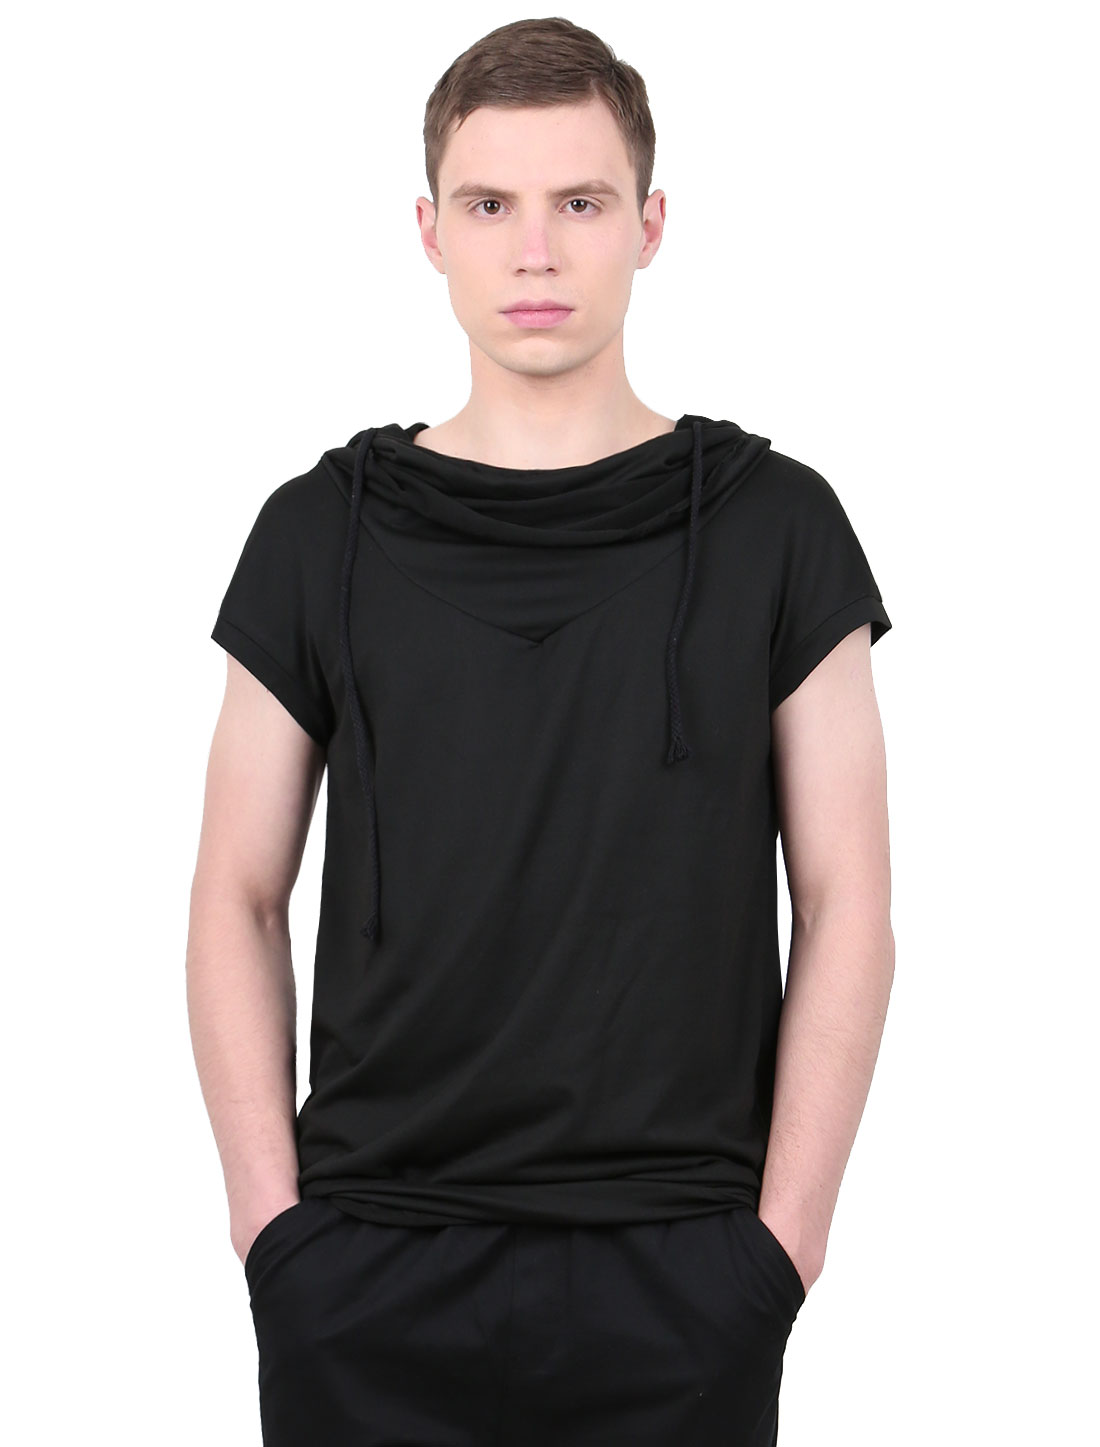 Men Cowl Neck Short Sleeve Drawstring Casual Hoodie T Shirt Black S